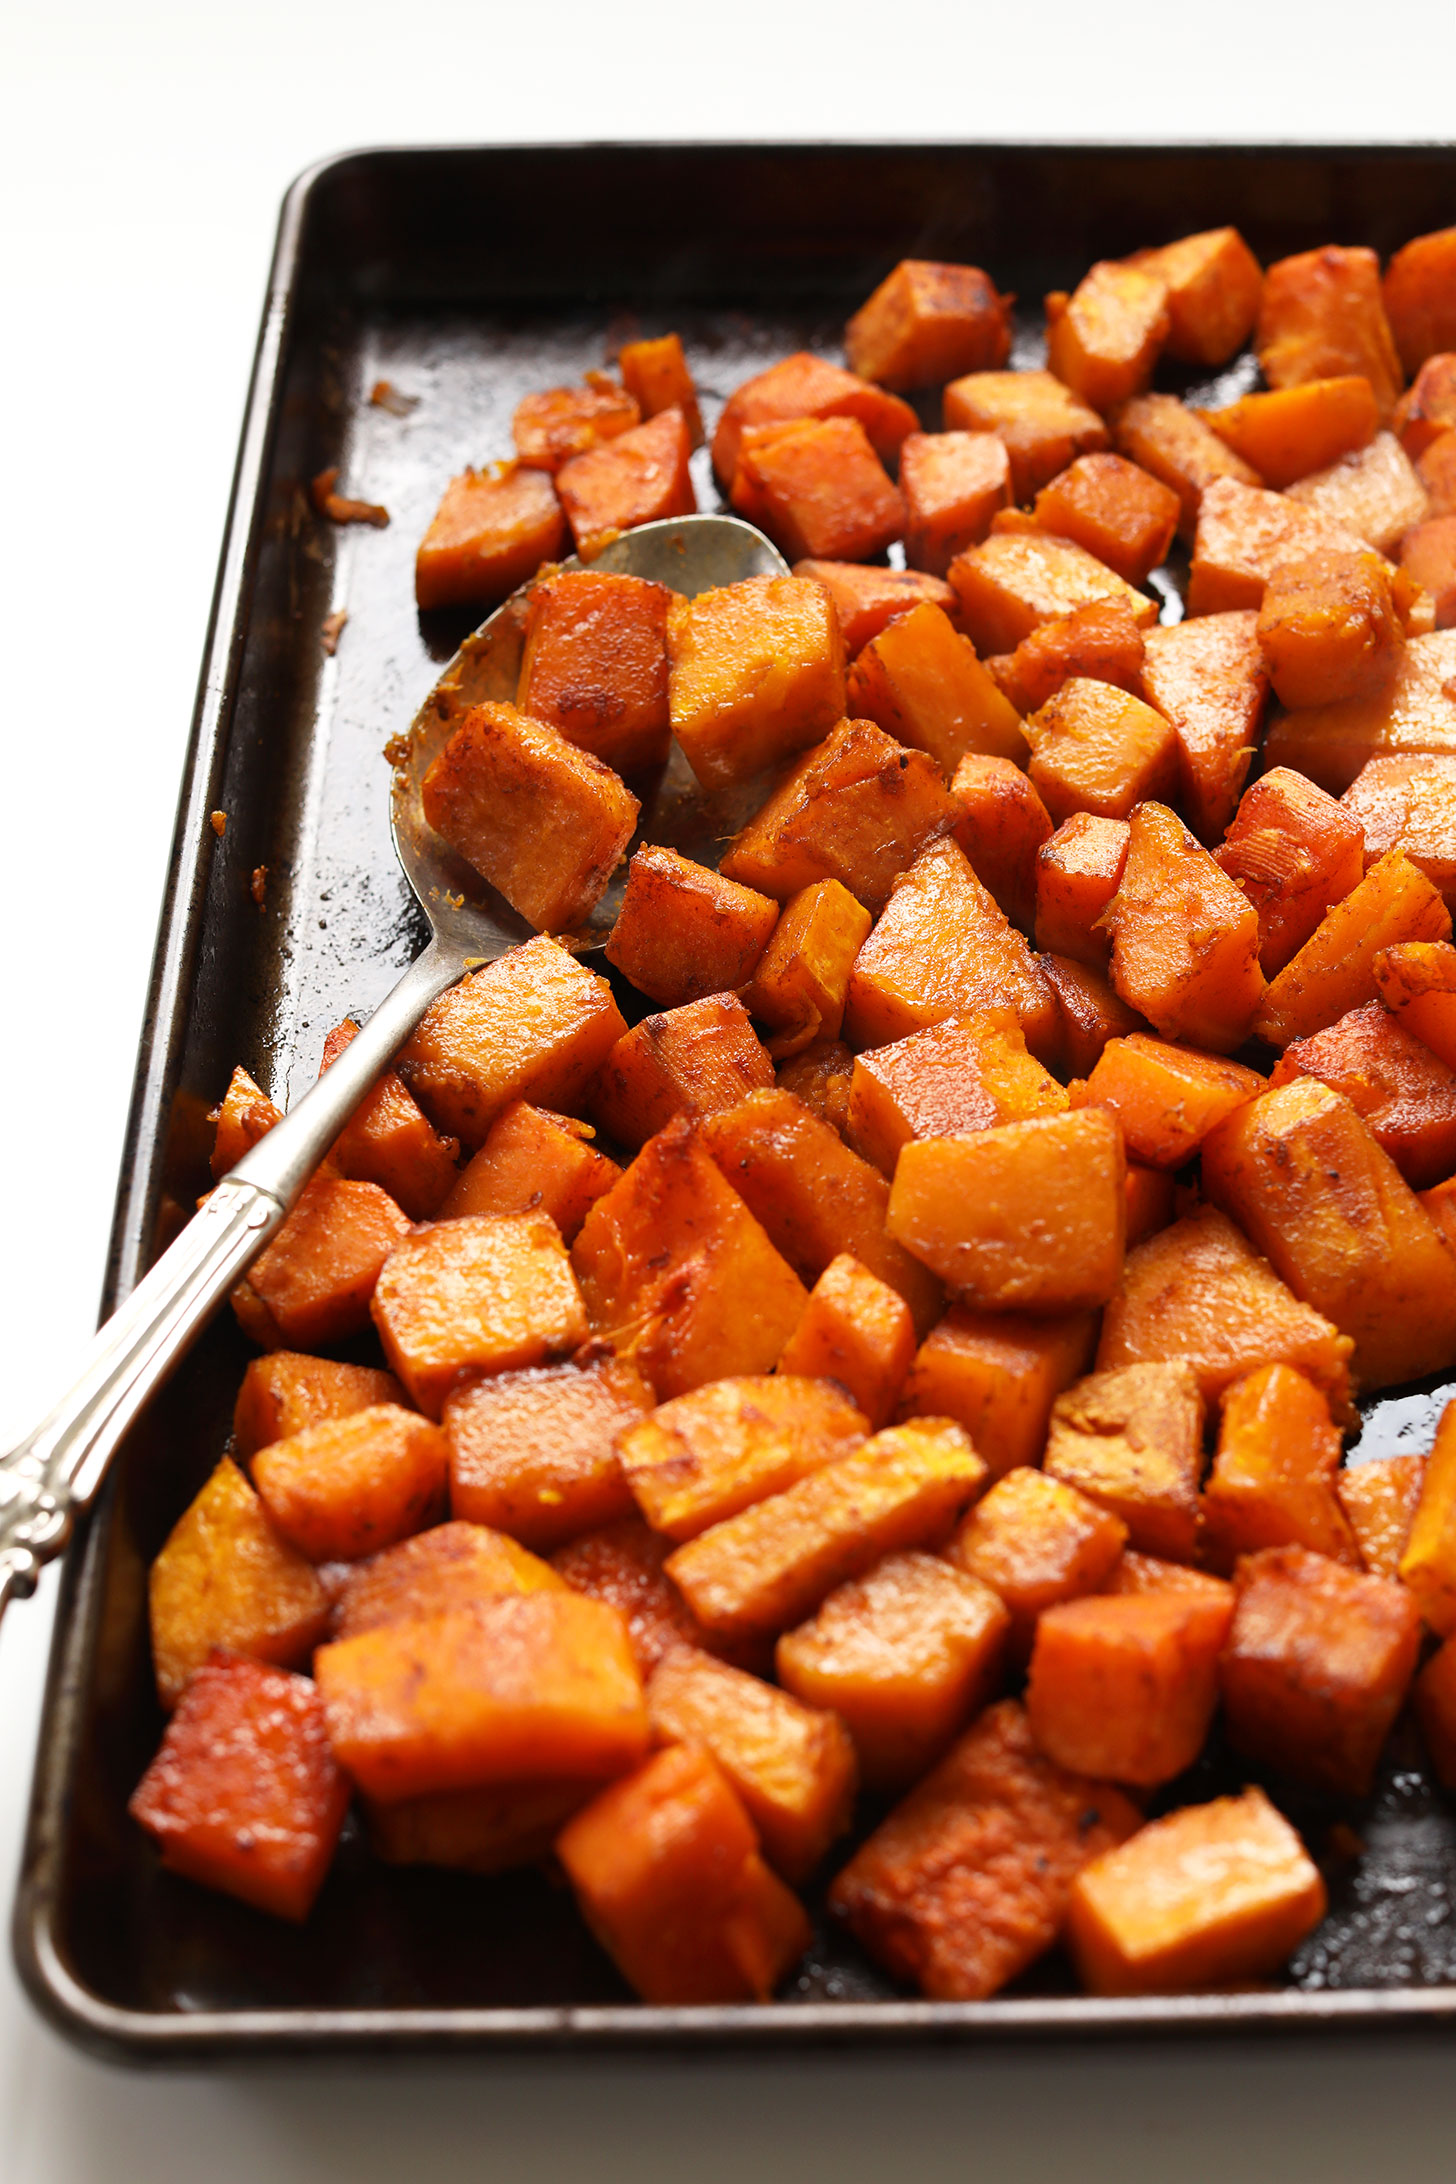 Baking sheet with freshly roasted Sweet Spicy Butternut Squash for a thanksgiving salad recipe